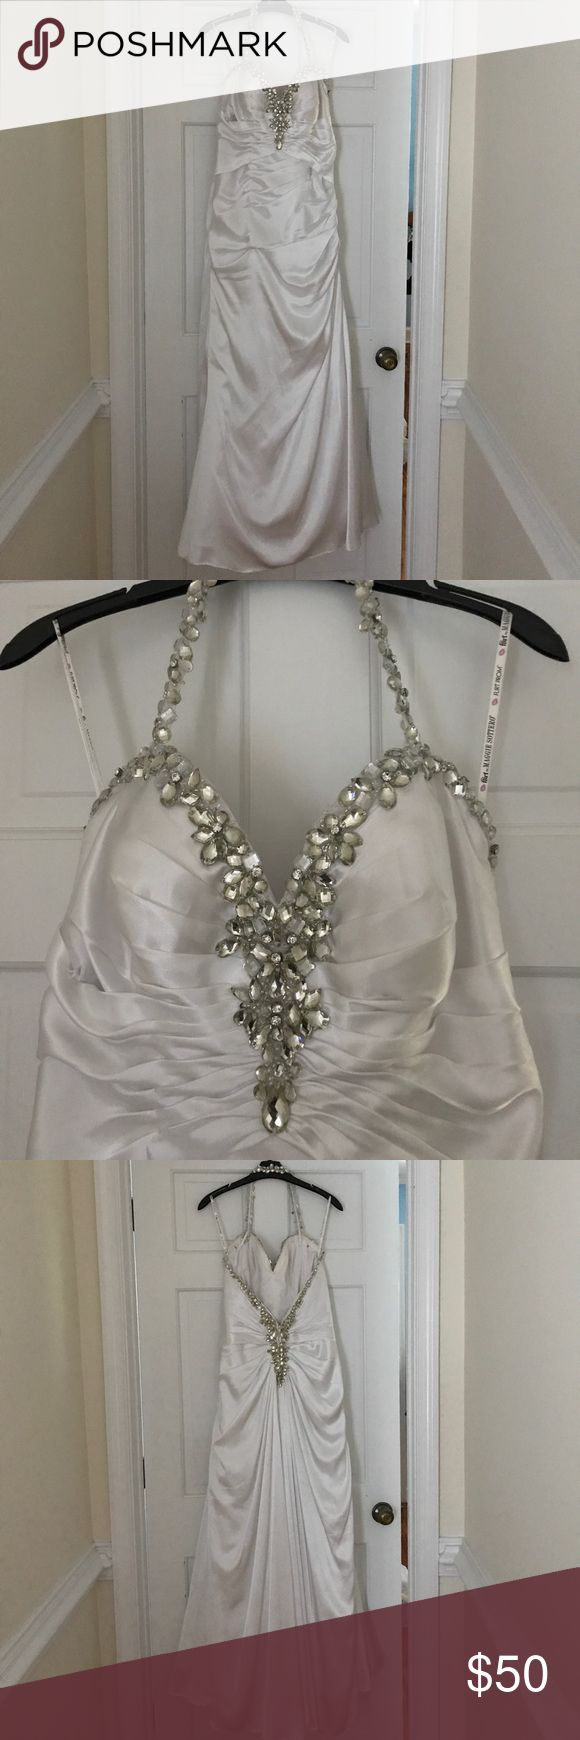 "White and Rhinestone Trim Prom Dress This simple and gorgeous dress reminds me of vintage Hollywood! It hugs all the right places and flows nicely! The over the neck strap is dripping with bling as is the front and back top parts of the dress. It is a size 14 and was worn by a girl who is 5'0"" with 3 inch heels. It was only worn once and then hung up. It was purchased at a bridal boutique. Dresses Prom"